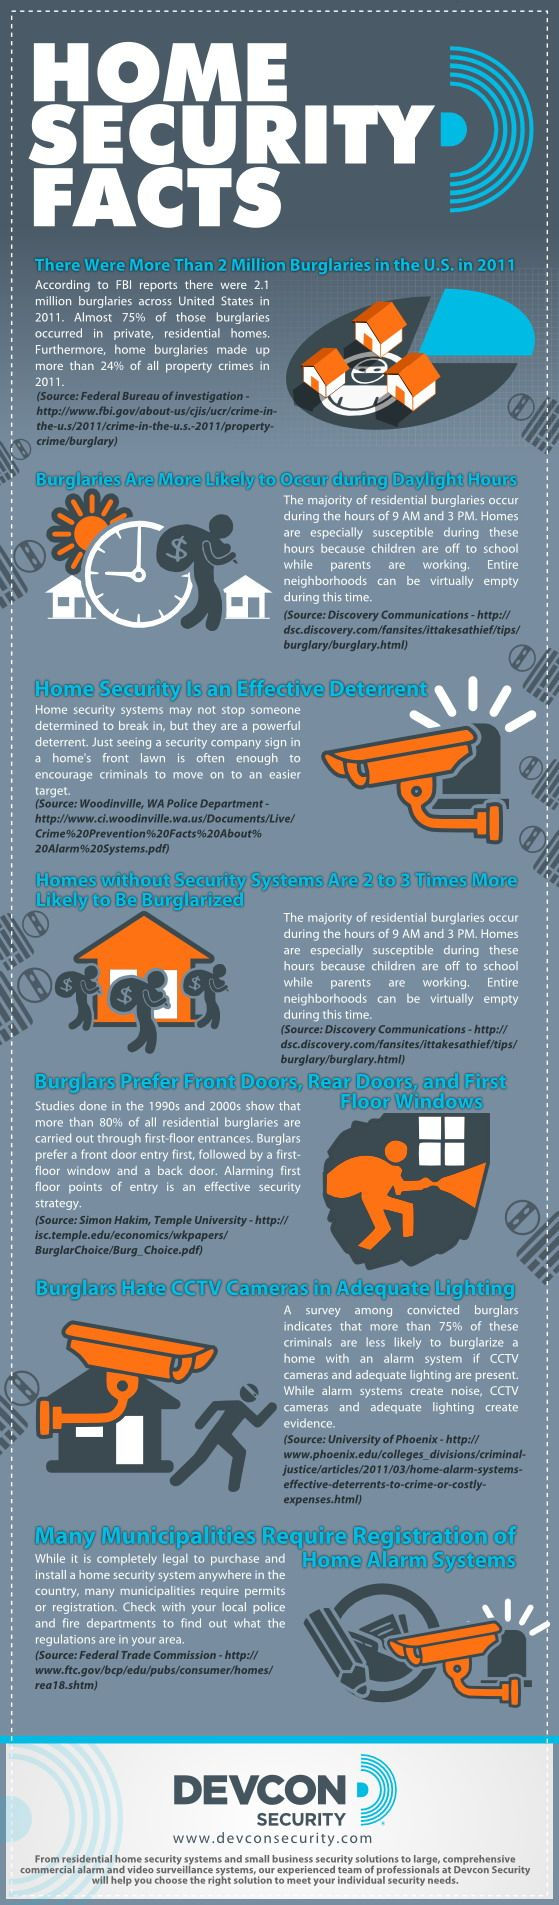 Home Security Facts Infographic | Devcon Security Blog